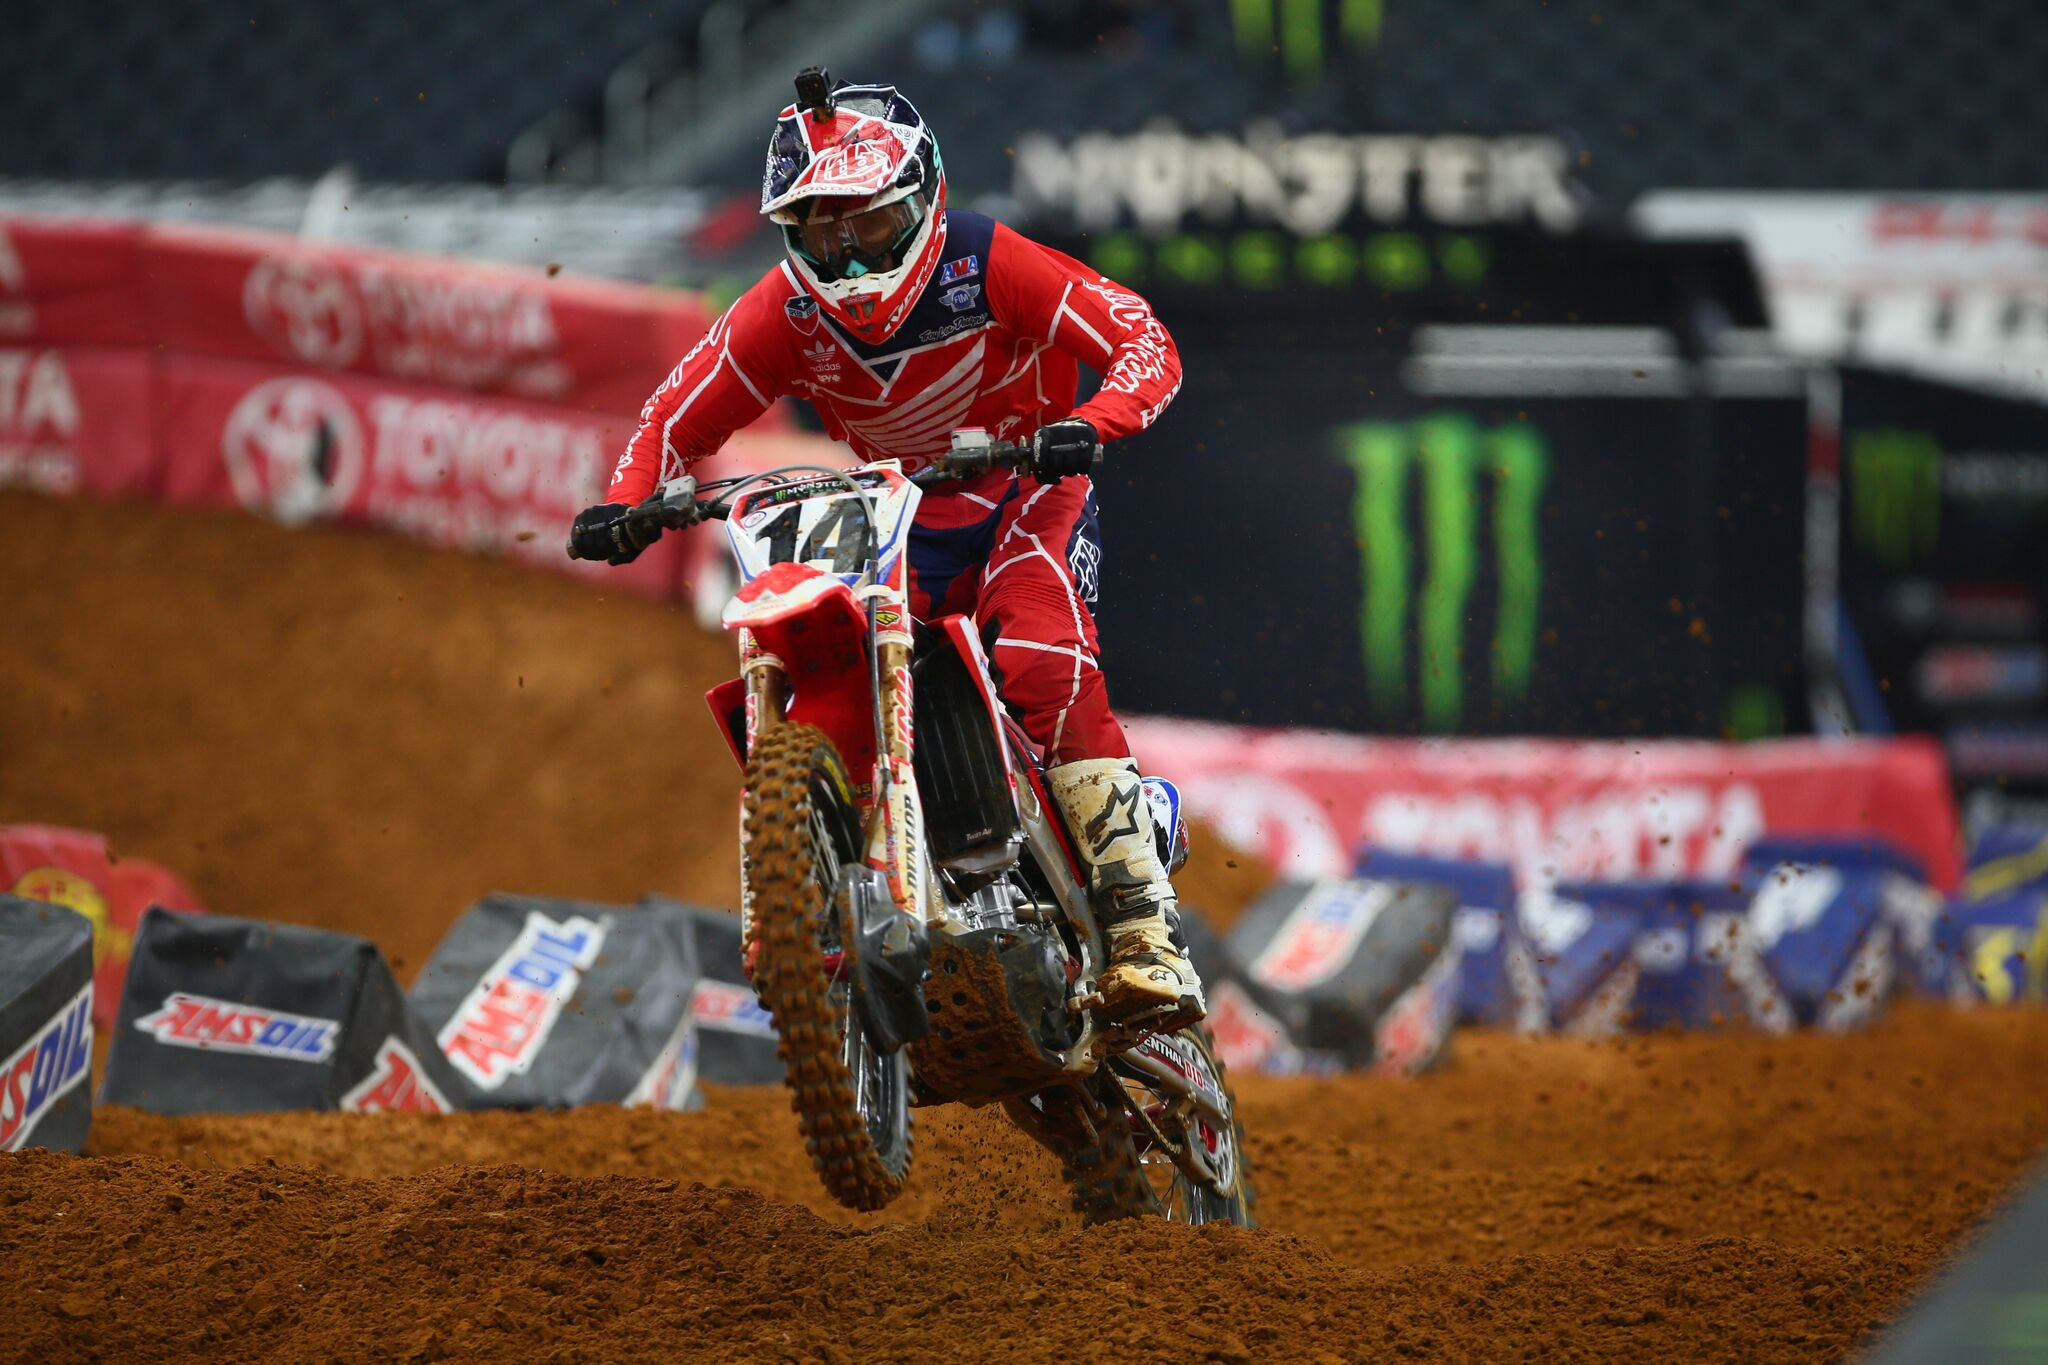 Troy Lee Designs rider Cole Seely Arlington-2